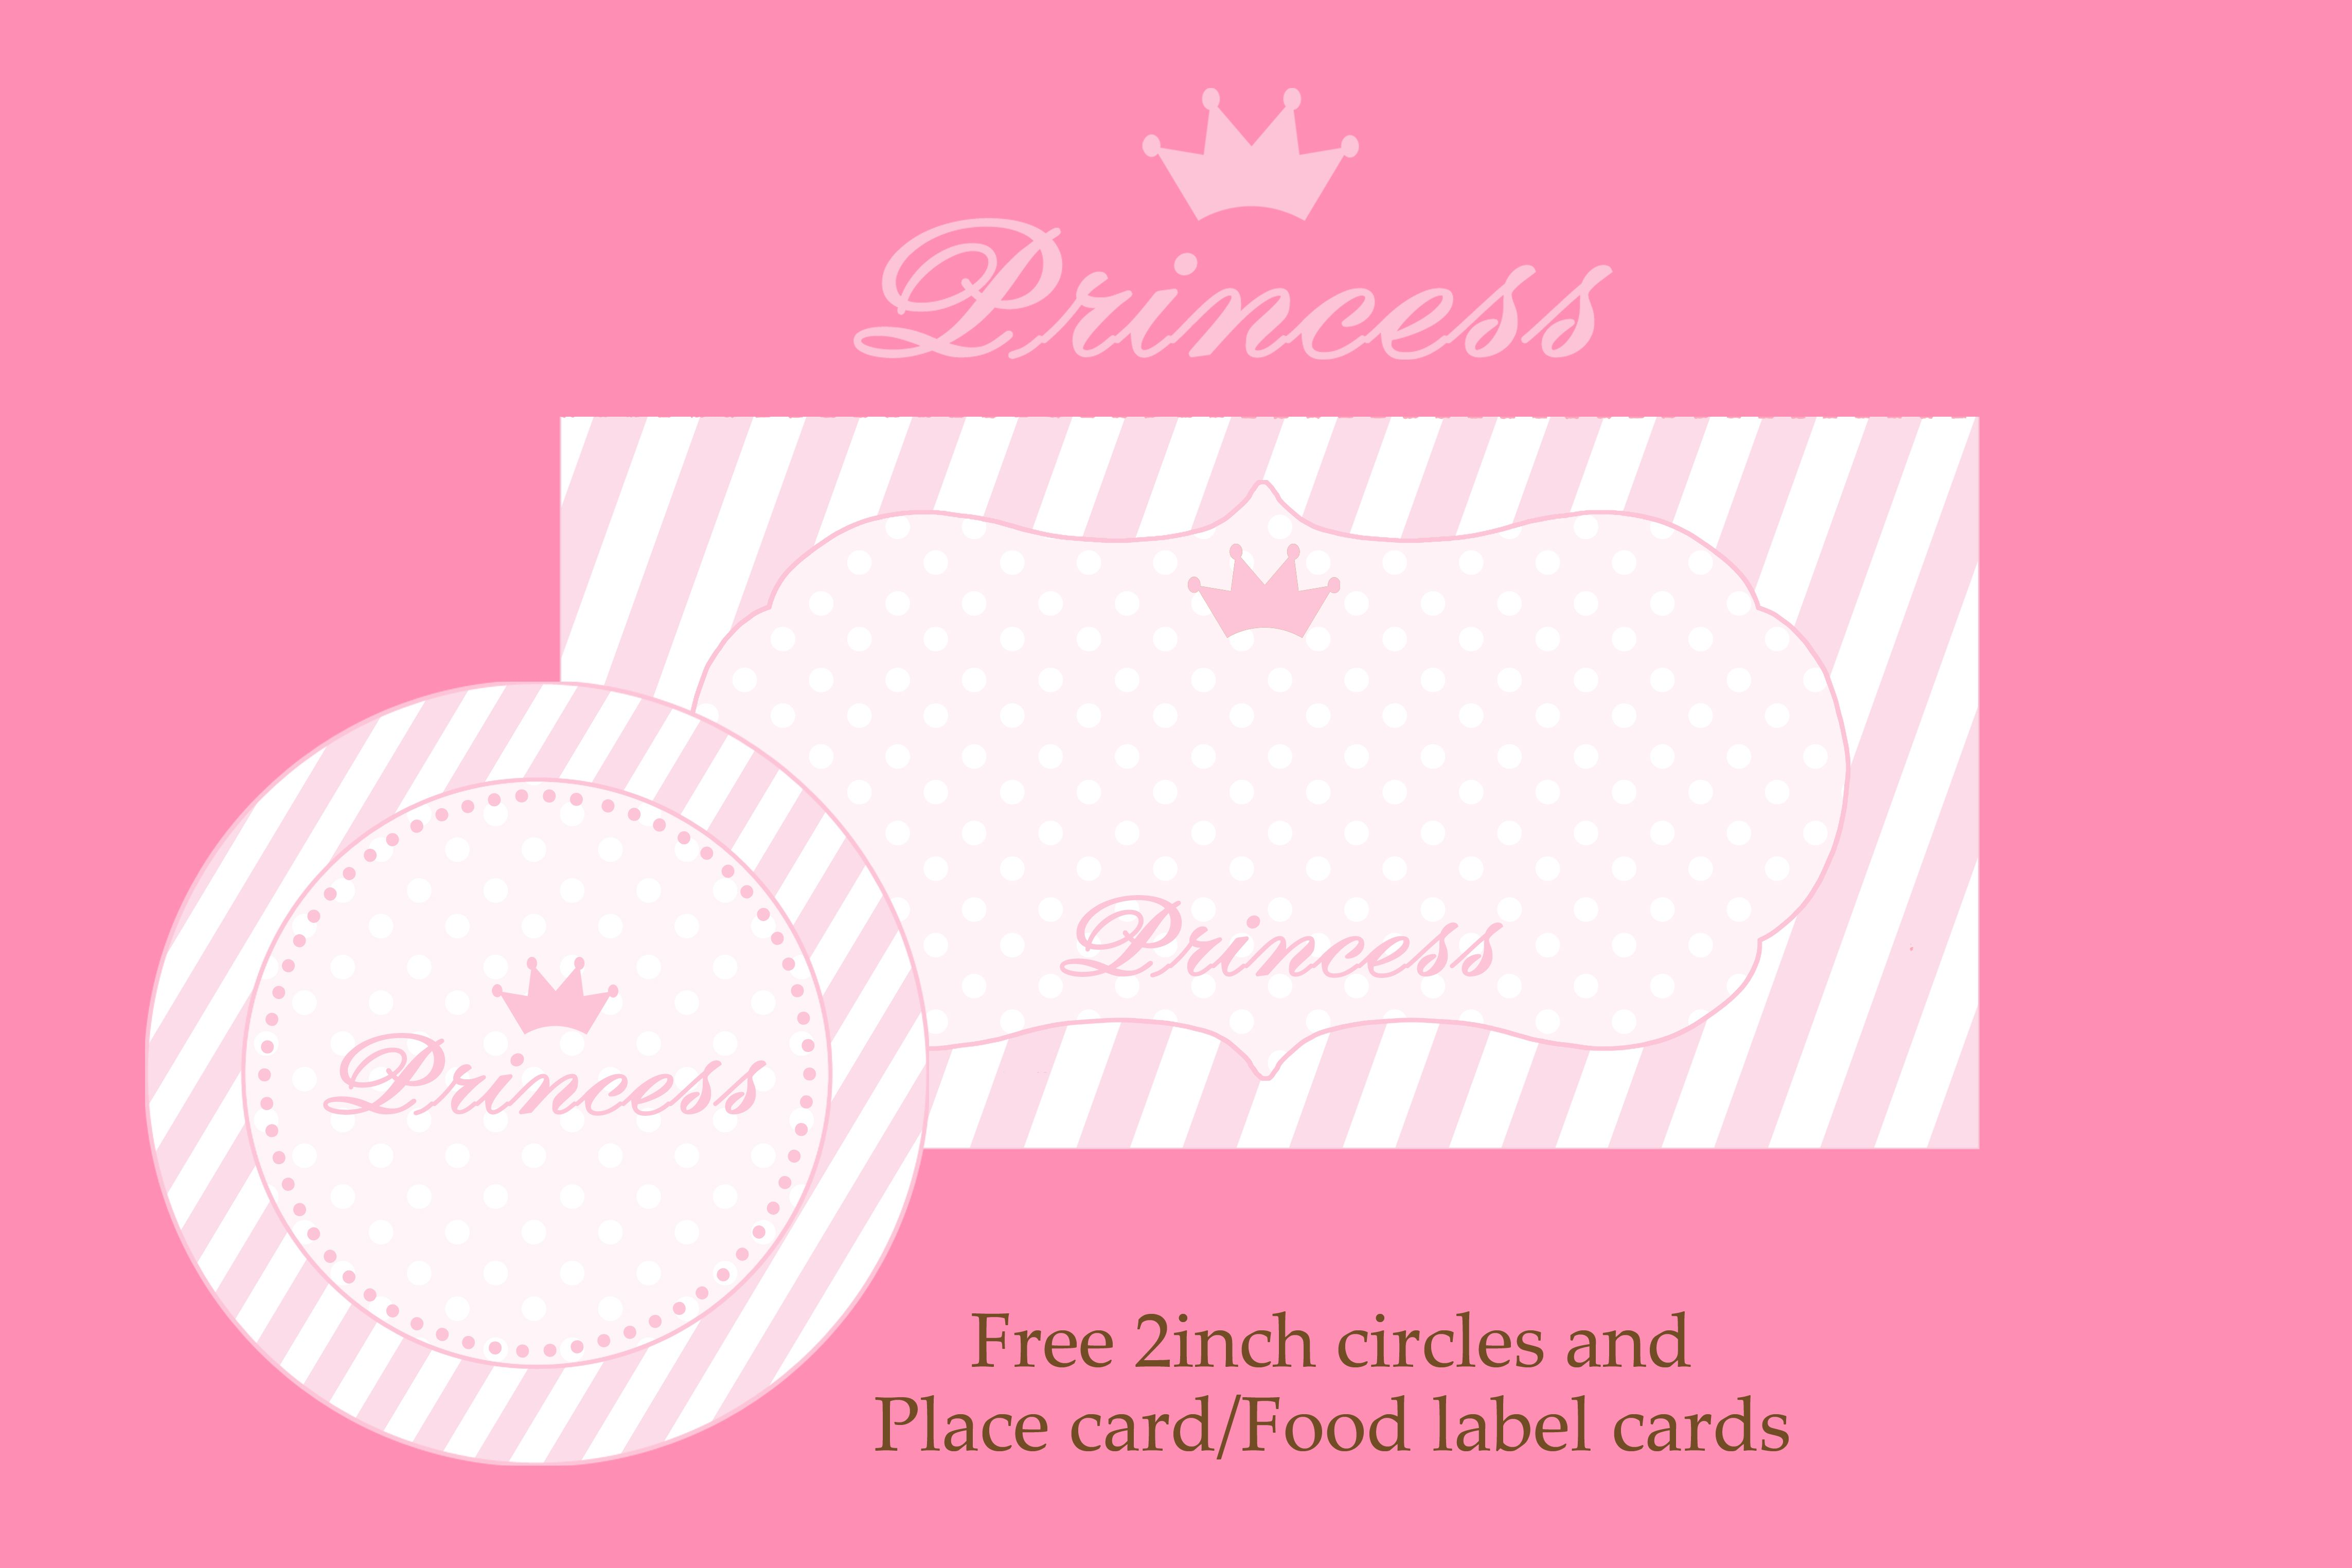 17 best images about birthday party princess theme 17 best images about birthday party princess theme princess birthday parties bunting flags and princess birthday